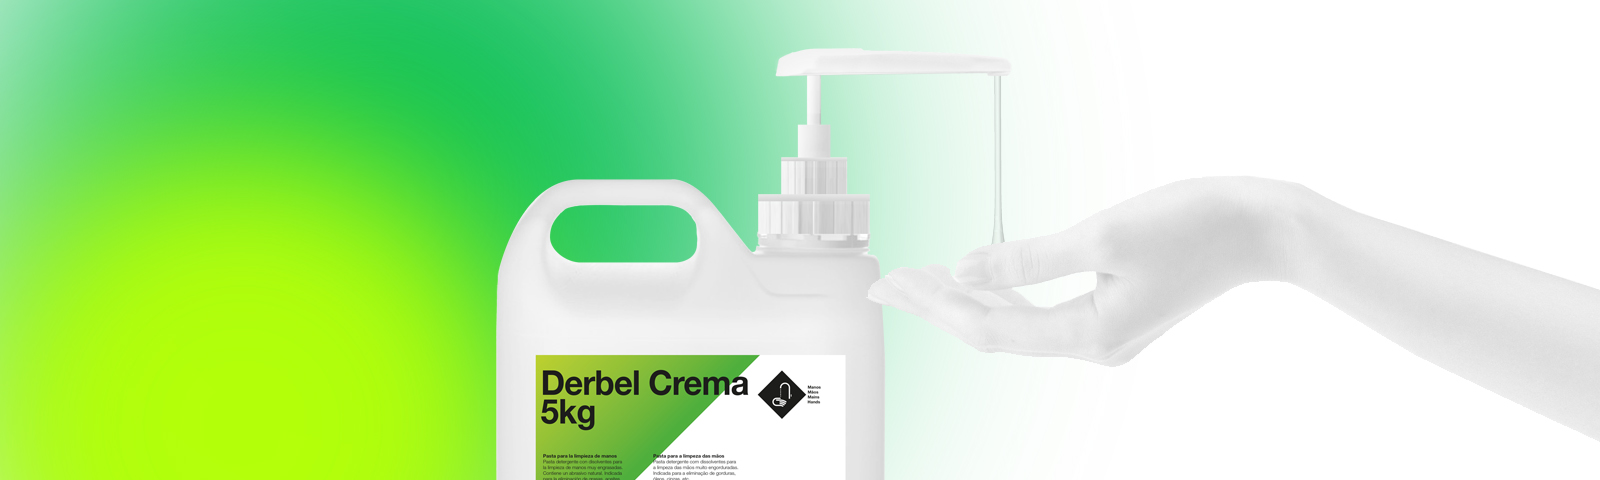 Derbel Crema amb abrasiu natural